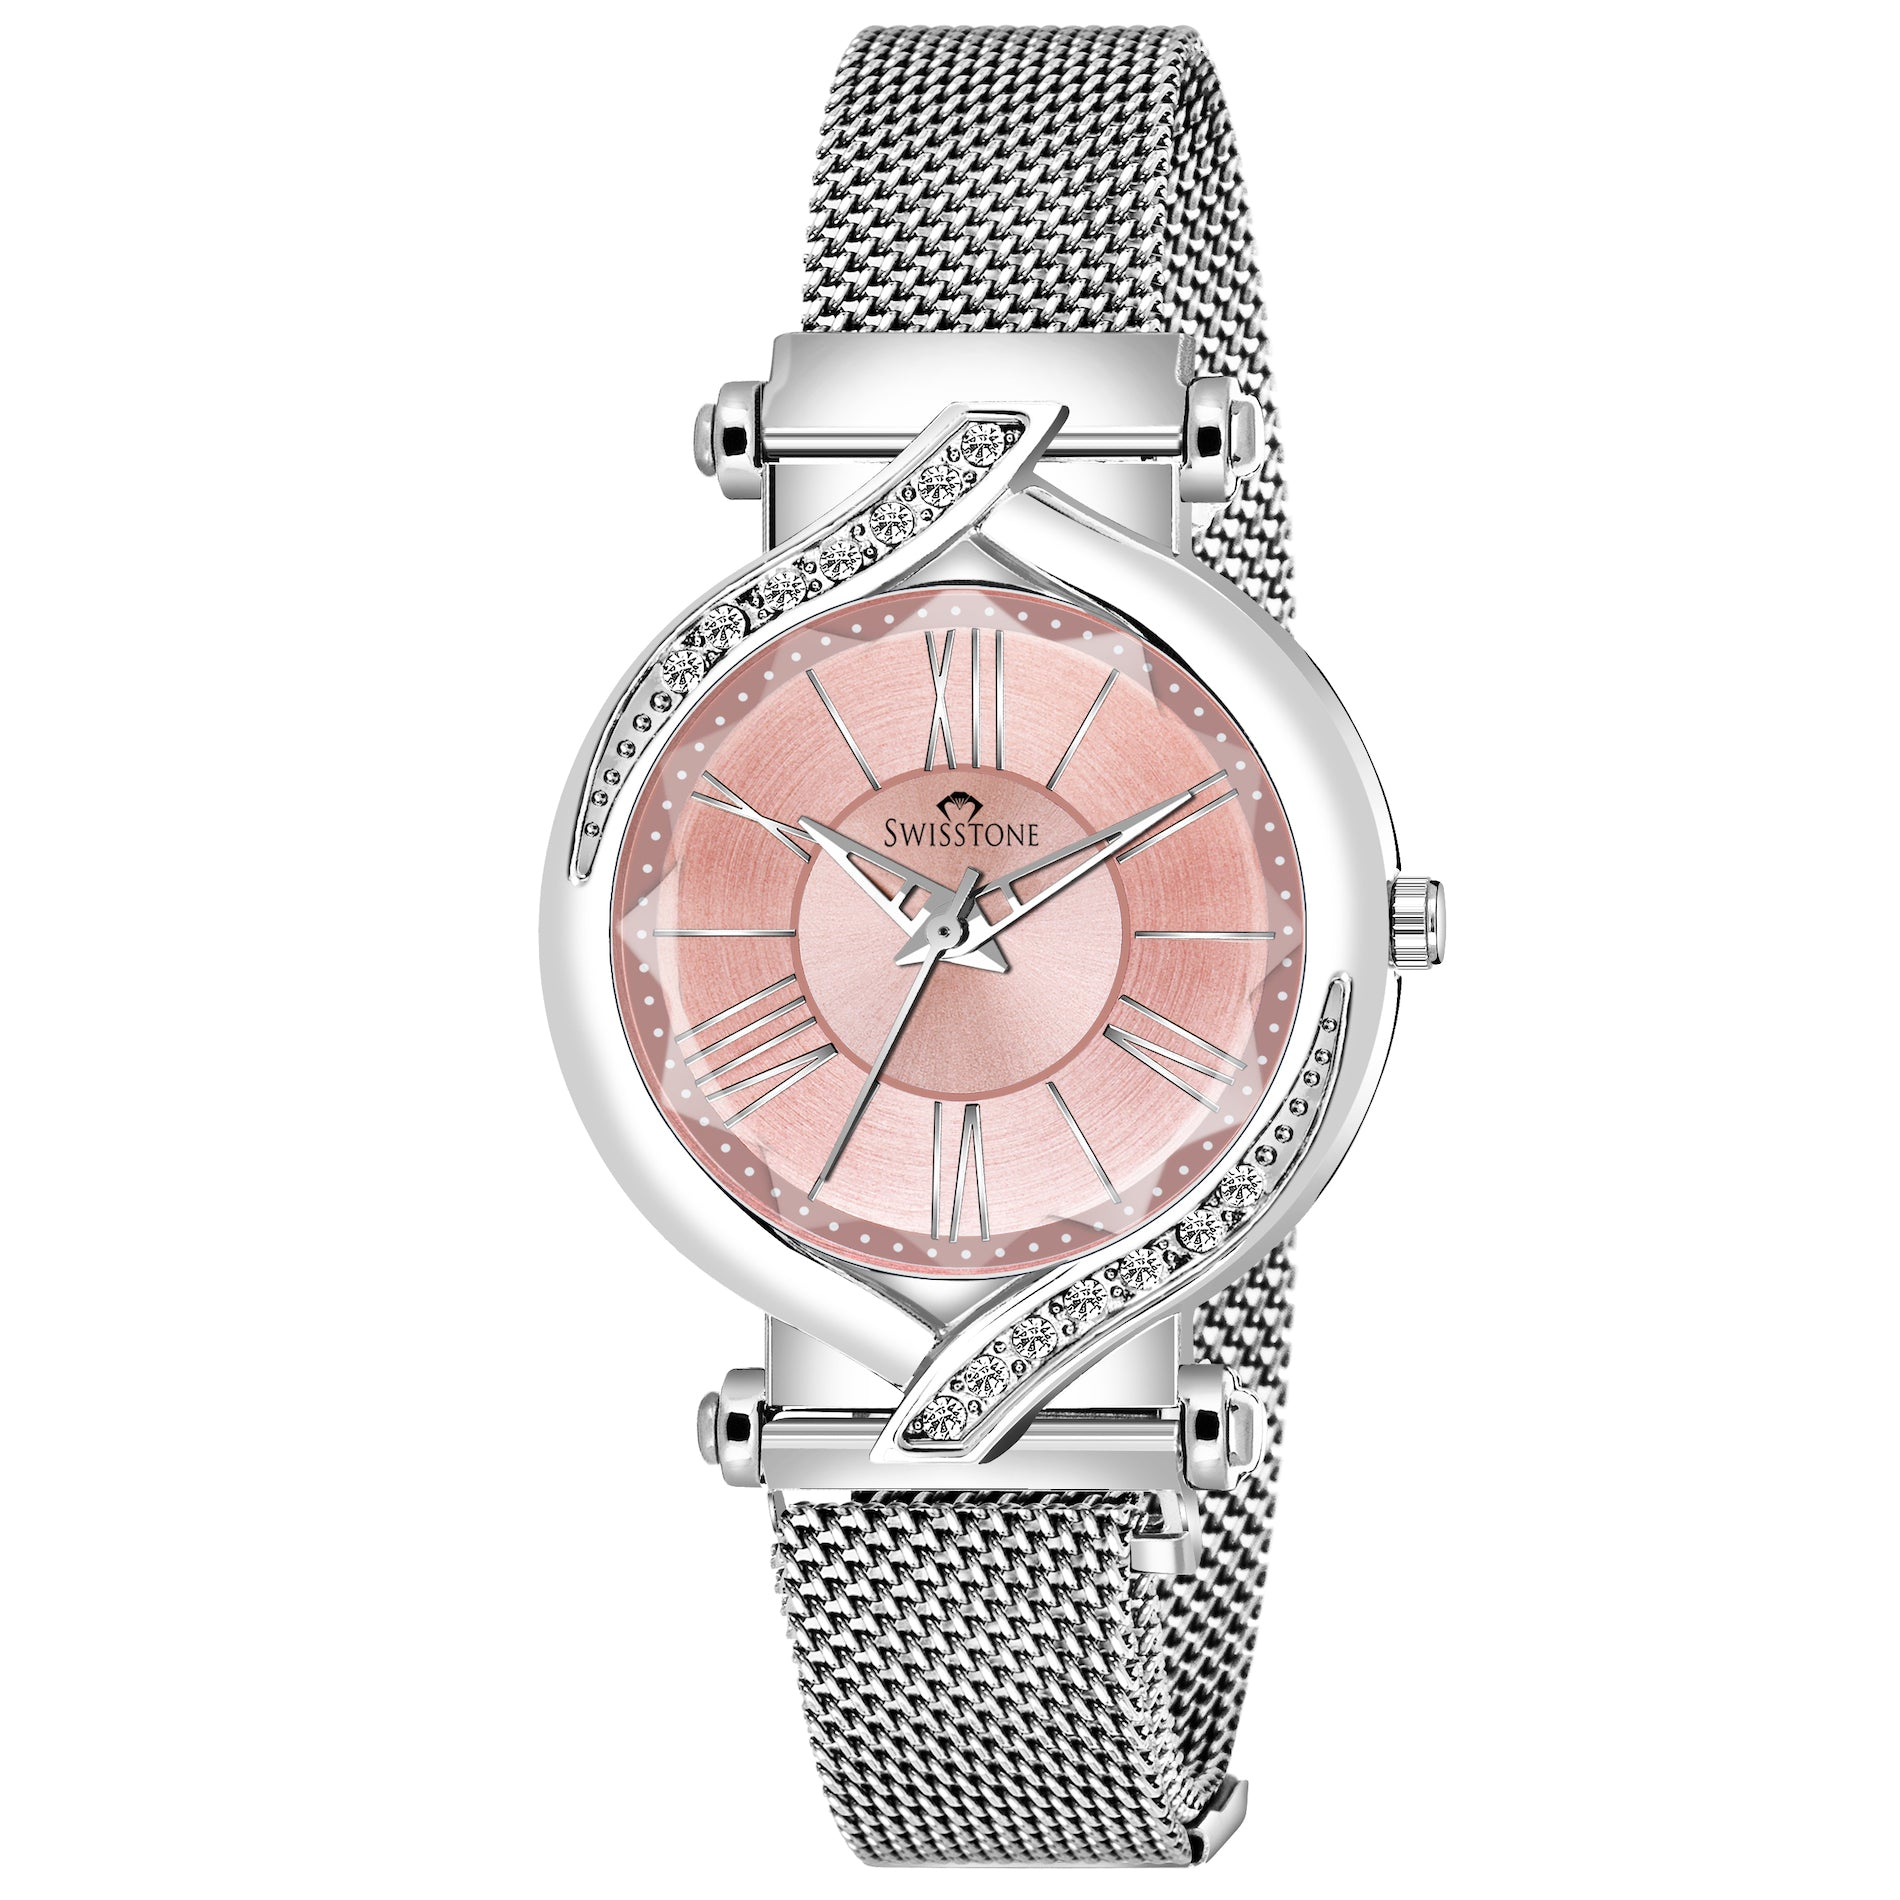 SWISSTONE L241-PNK-CH Wrist Watch for Women